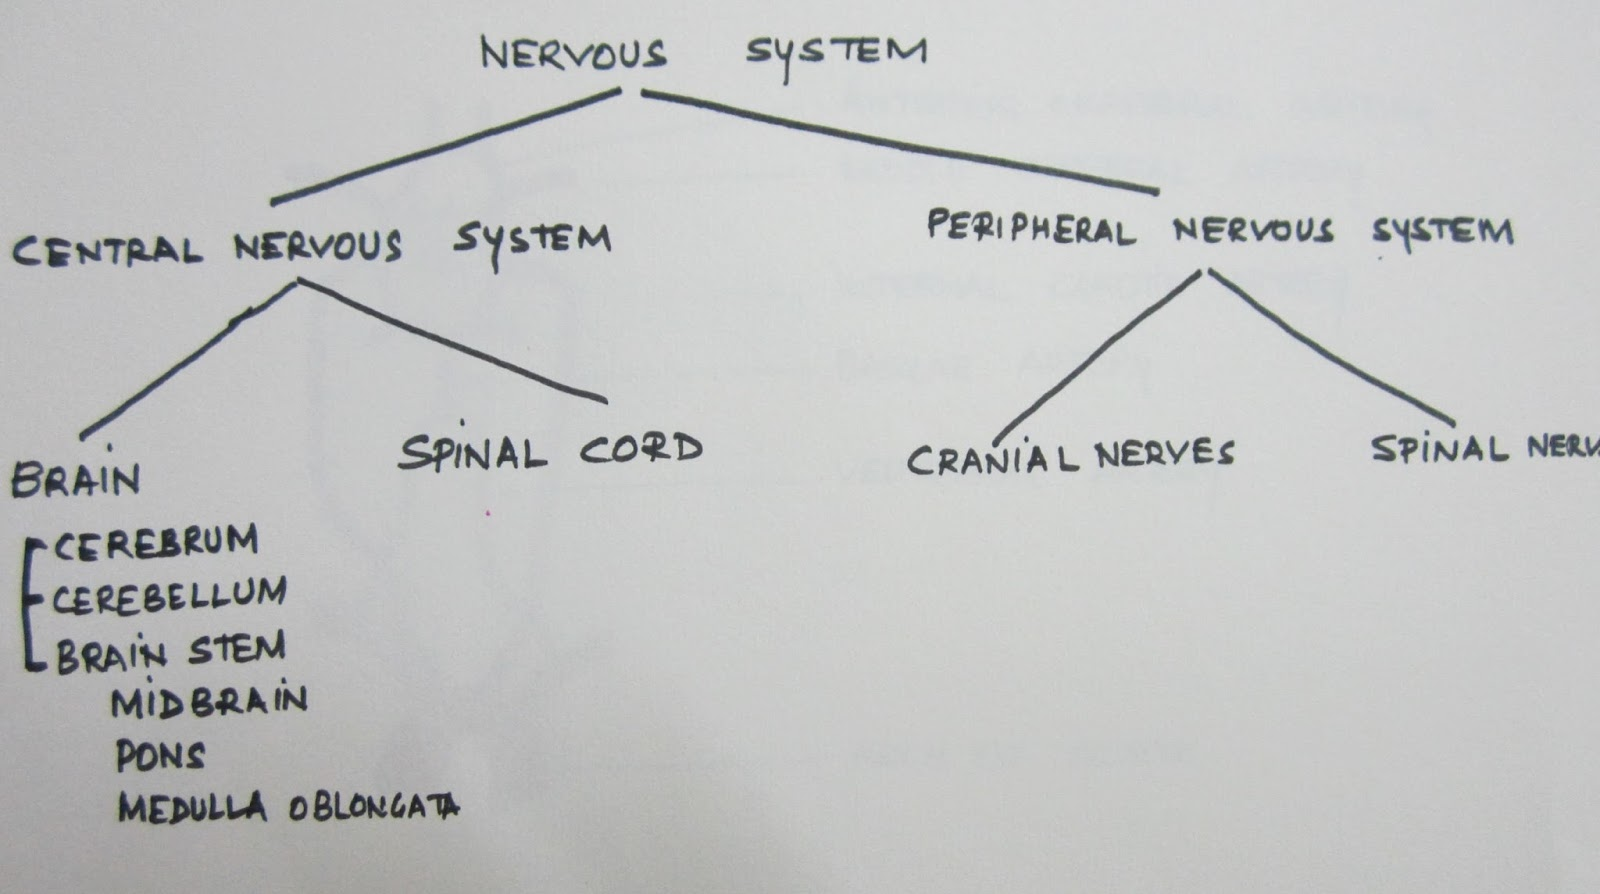 Brain mind a to z basic neuroanatomy for the beginner brain cns consists of brain spinal cord pns consists of cranial nerves spinal nerves the peripheral nervous system consists of 12 pairs of cranial nerves ccuart Gallery